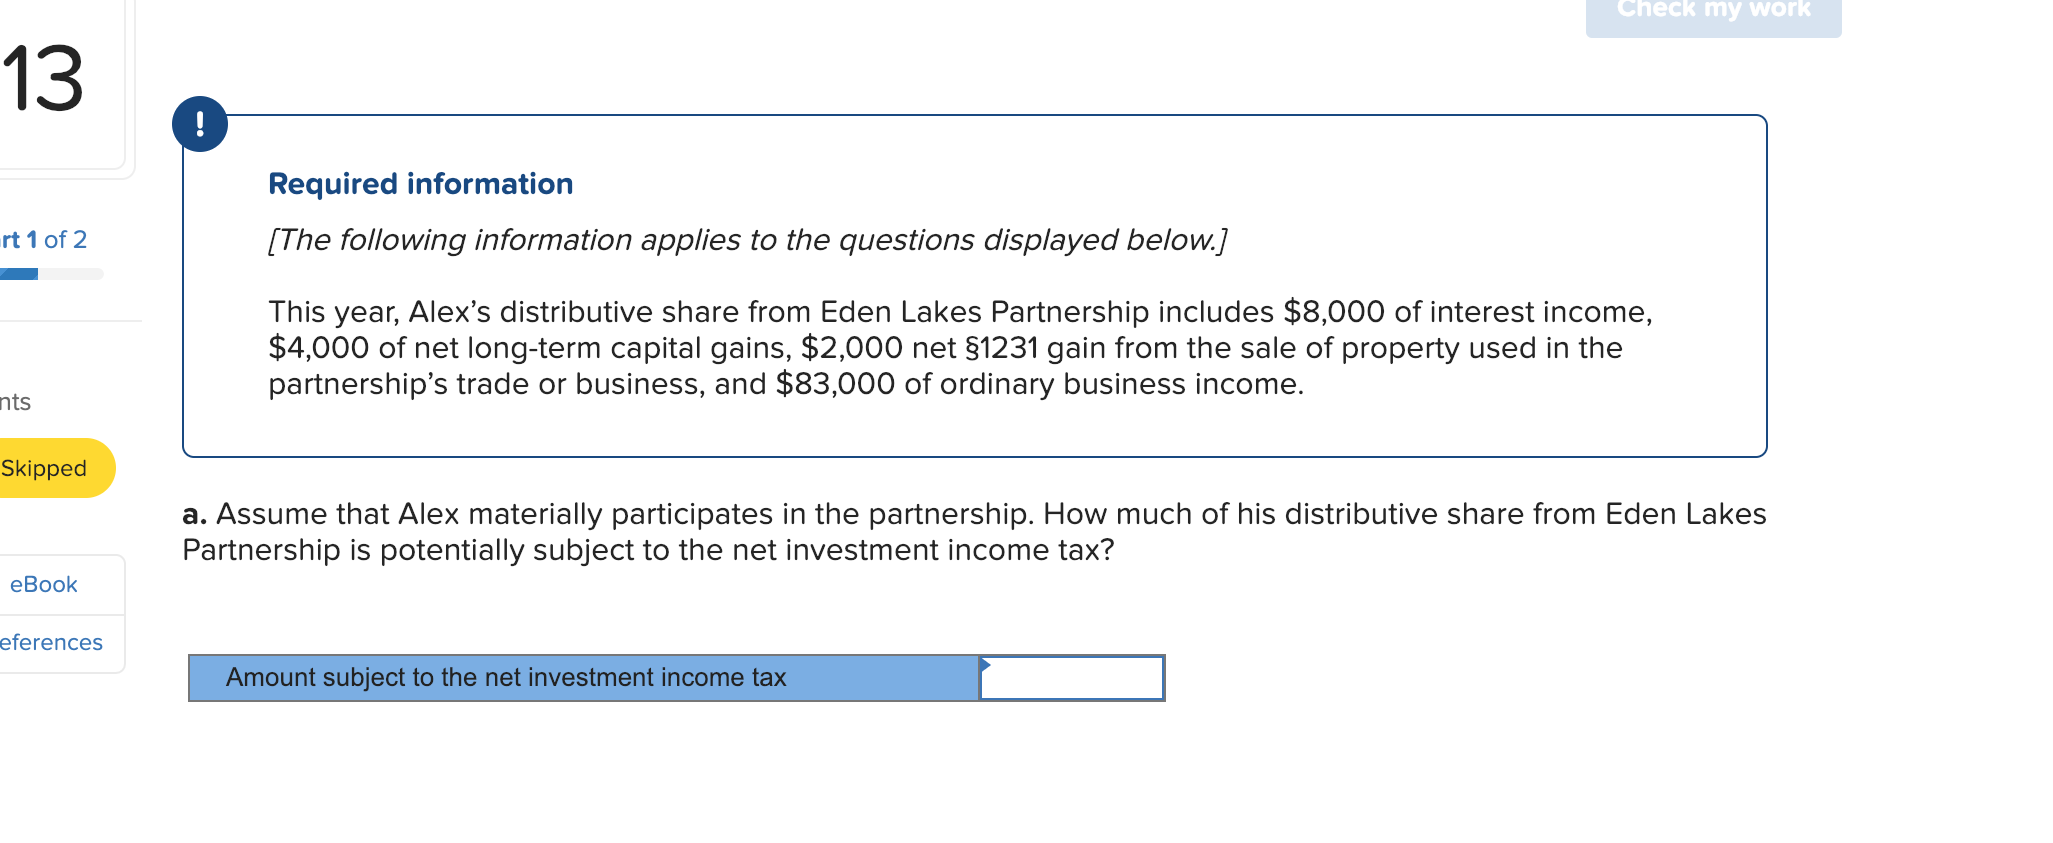 Check my work 13 ! Required information [The following information applies to the questions displayed below.] rt 1 of 2 This year, Alex's distributive share from Eden Lakes Partnership includes $8,000 of interest income, $4,000 of net long-term capital gains, $2,000 net $1231 gain from the sale of property used in the partnership's trade or business, and $83,000 of ordinary business income. nts Skipped a. Assume that Alex materially participates in the partnership. How much of his distributive share from Eden Lakes Partnership is potentially subject to the net investment income tax? еВook eferences Amount subject to the net investment income tax